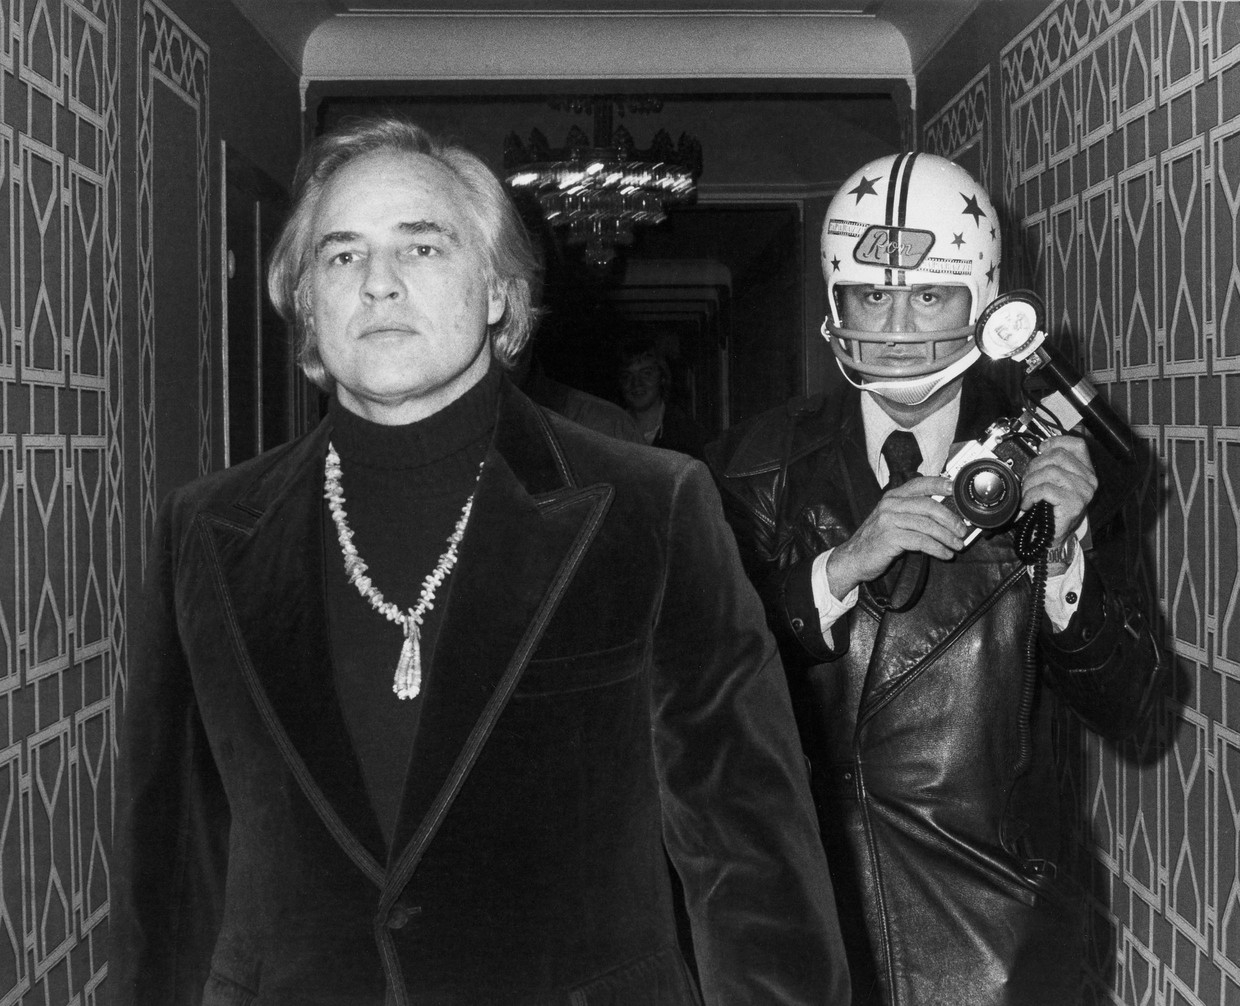 Marlon Brando and Ron Galella.  Beeld Ron Galella, Ltd.